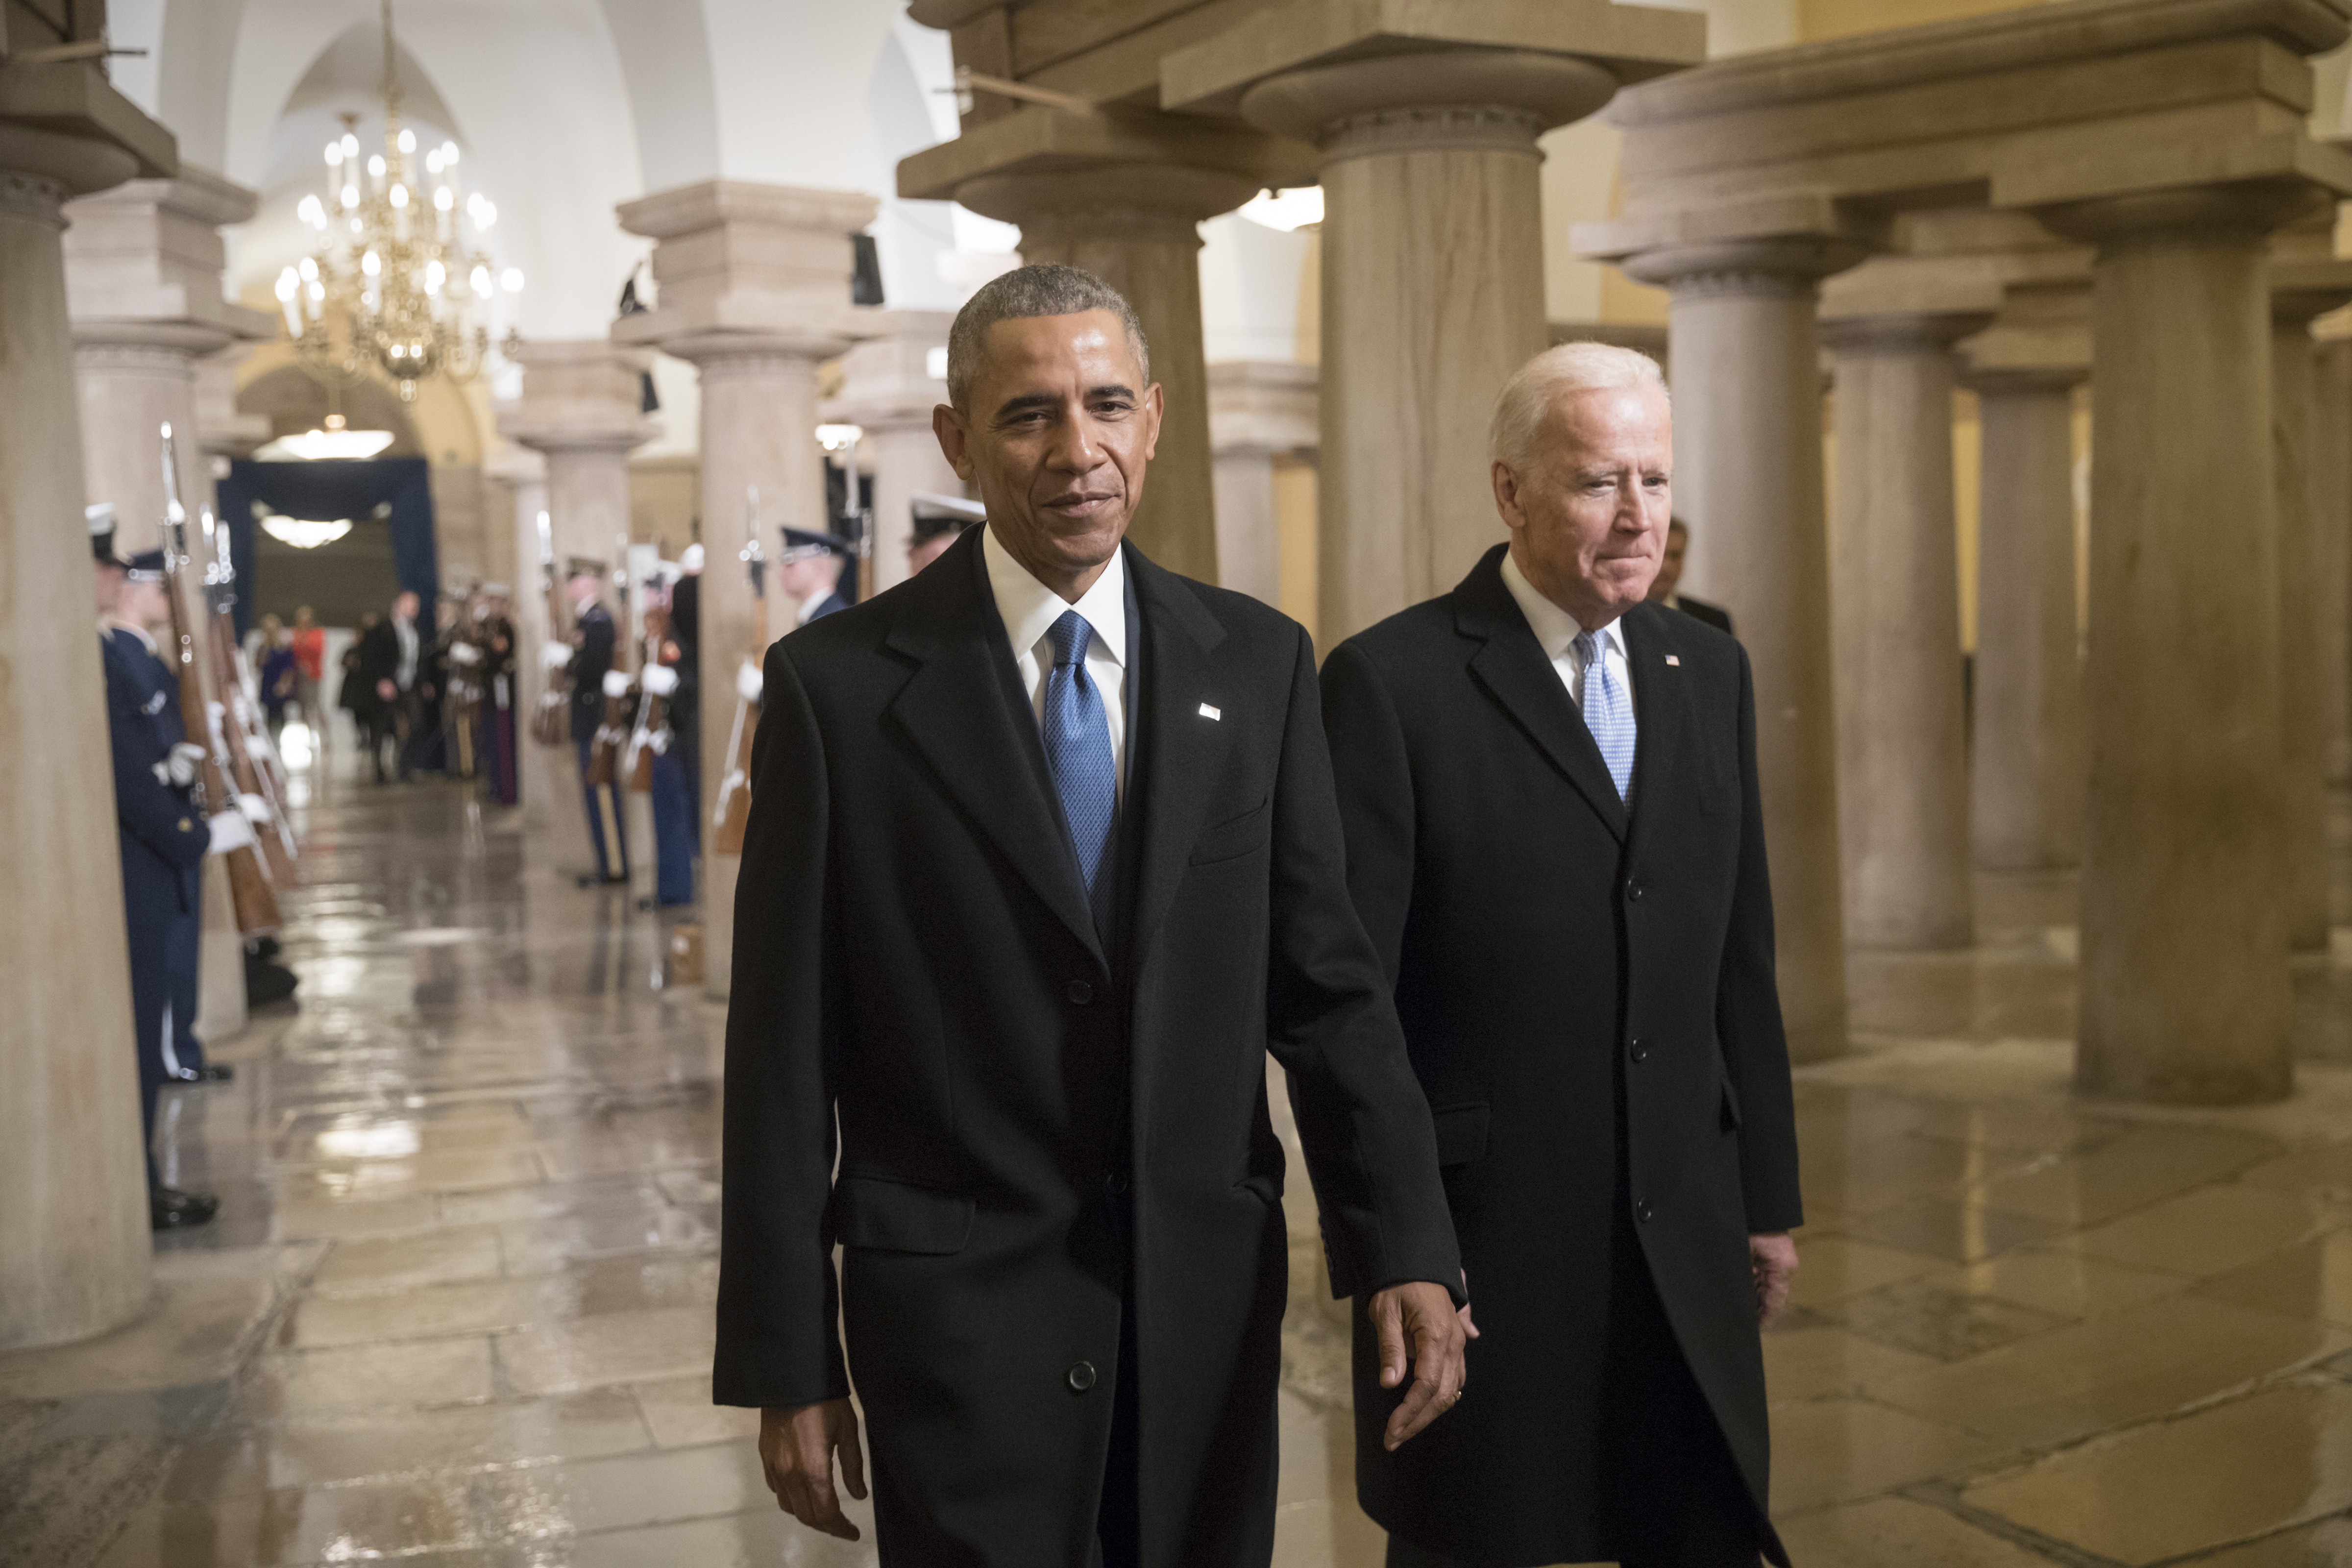 President Barack Obama and Vice President Joe Biden walk through the Crypt of the Capitol for Donald Trump's inauguration ceremony, in Washington, January 20, 2017. (Photo by J. Scott Applewhite - Pool/Getty Images)